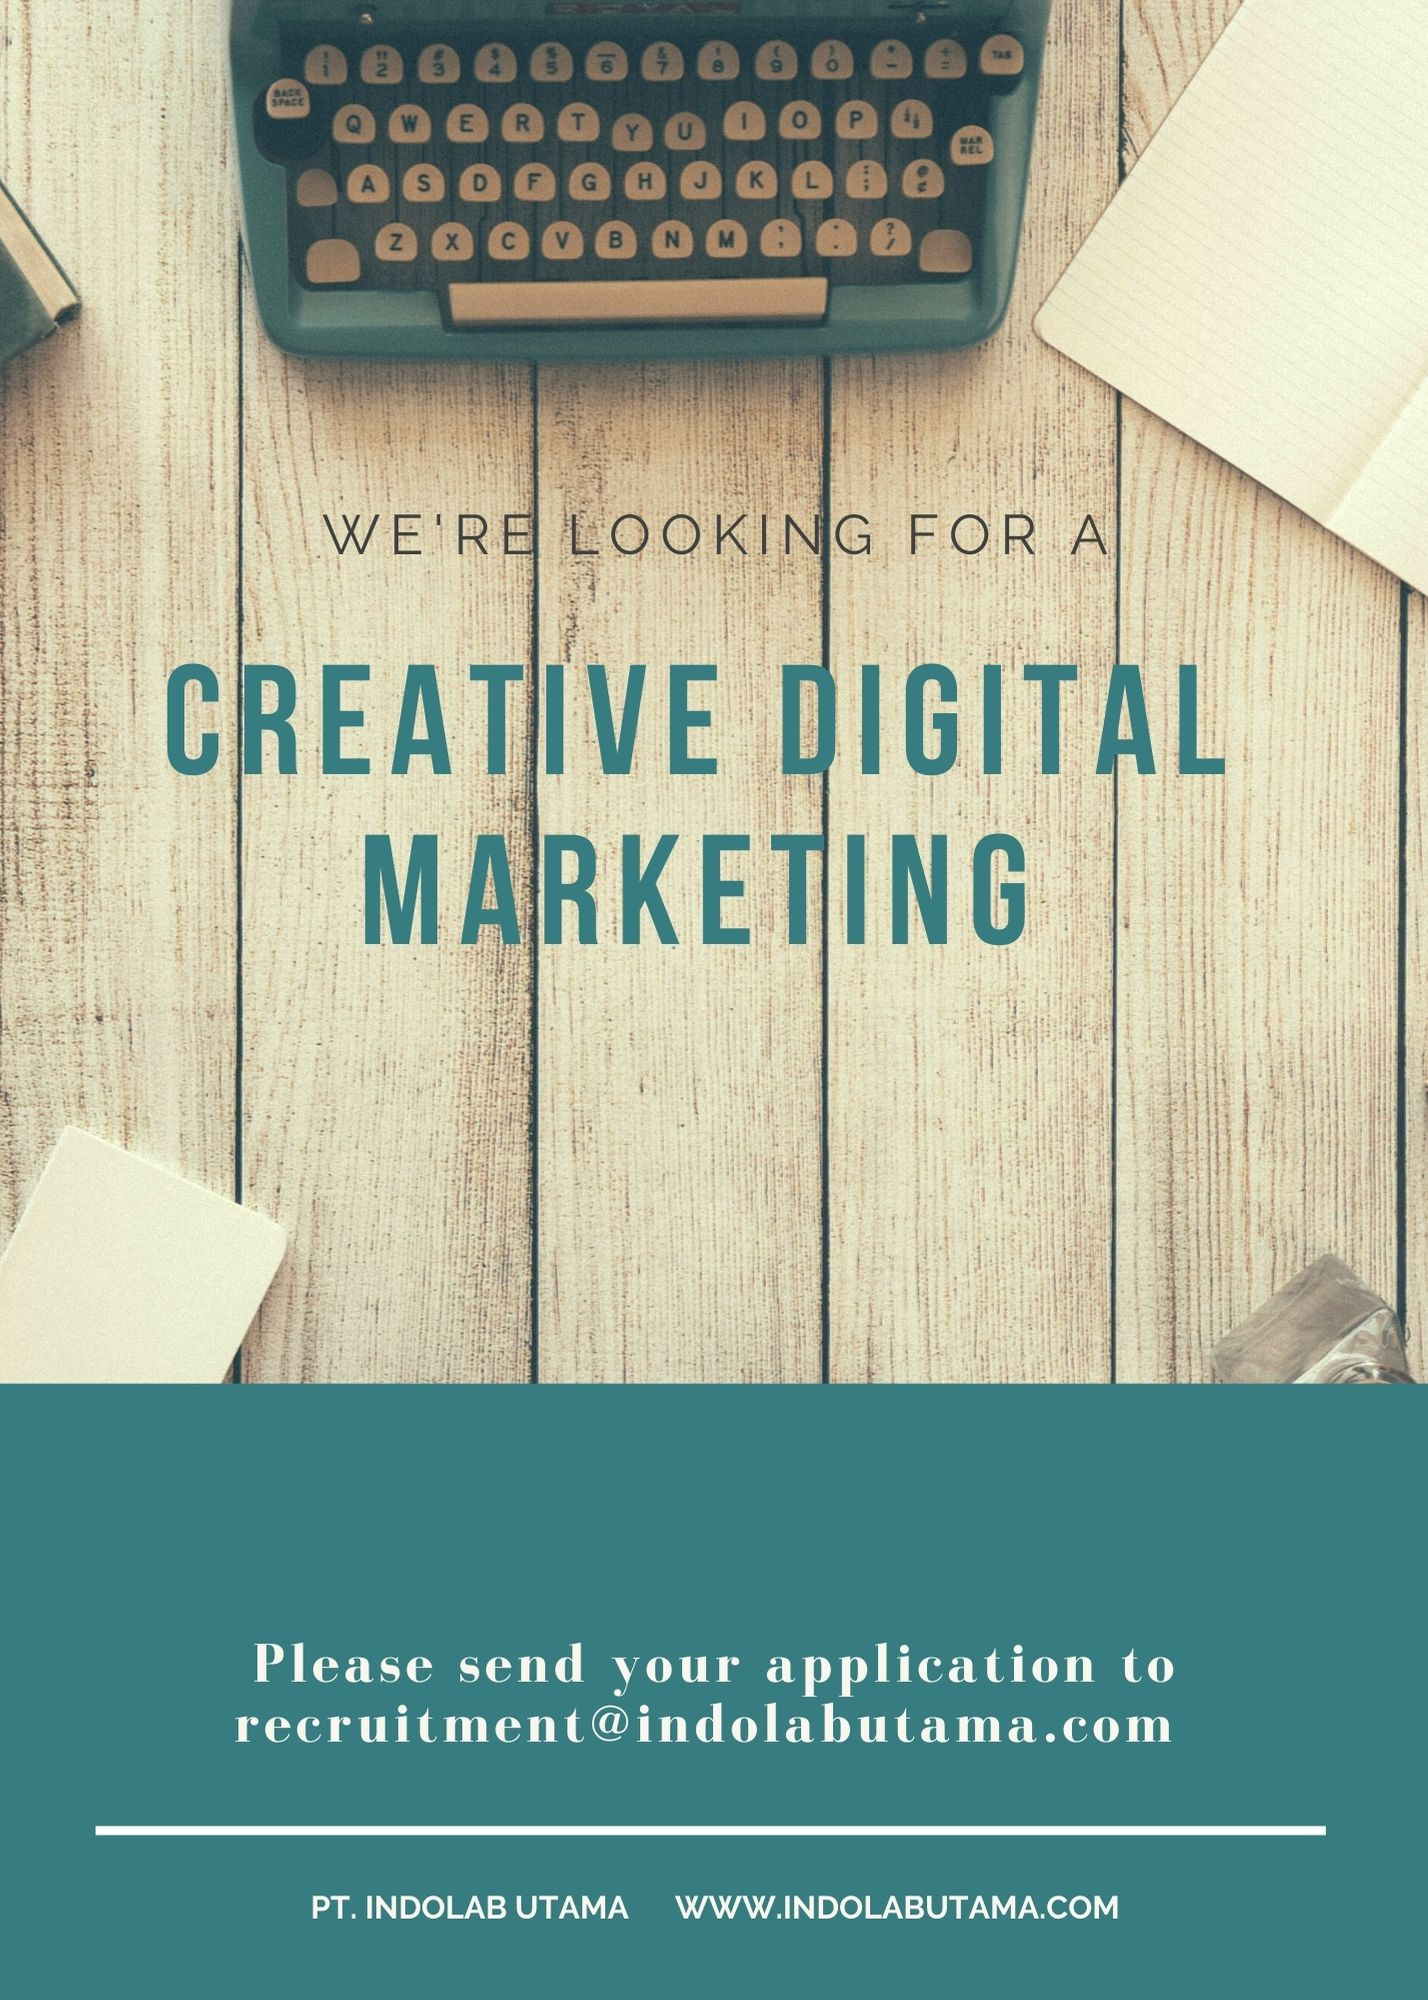 WE ARE LOOKING FOR A CREATIVE DIGITAL MARKETING